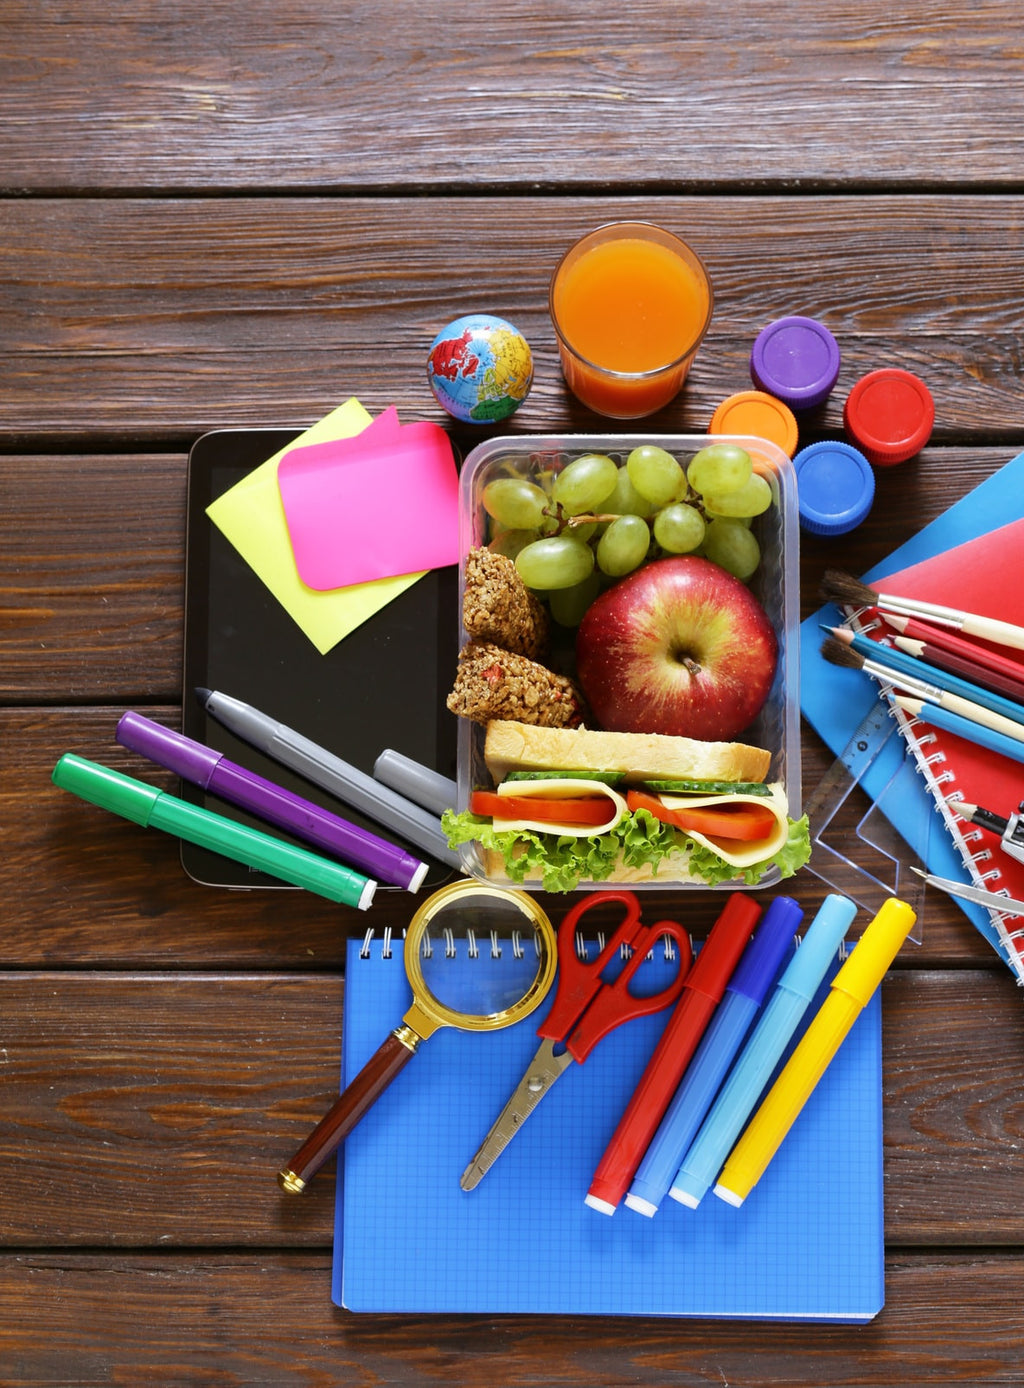 Top 4 Allergy-Friendly School Snacks